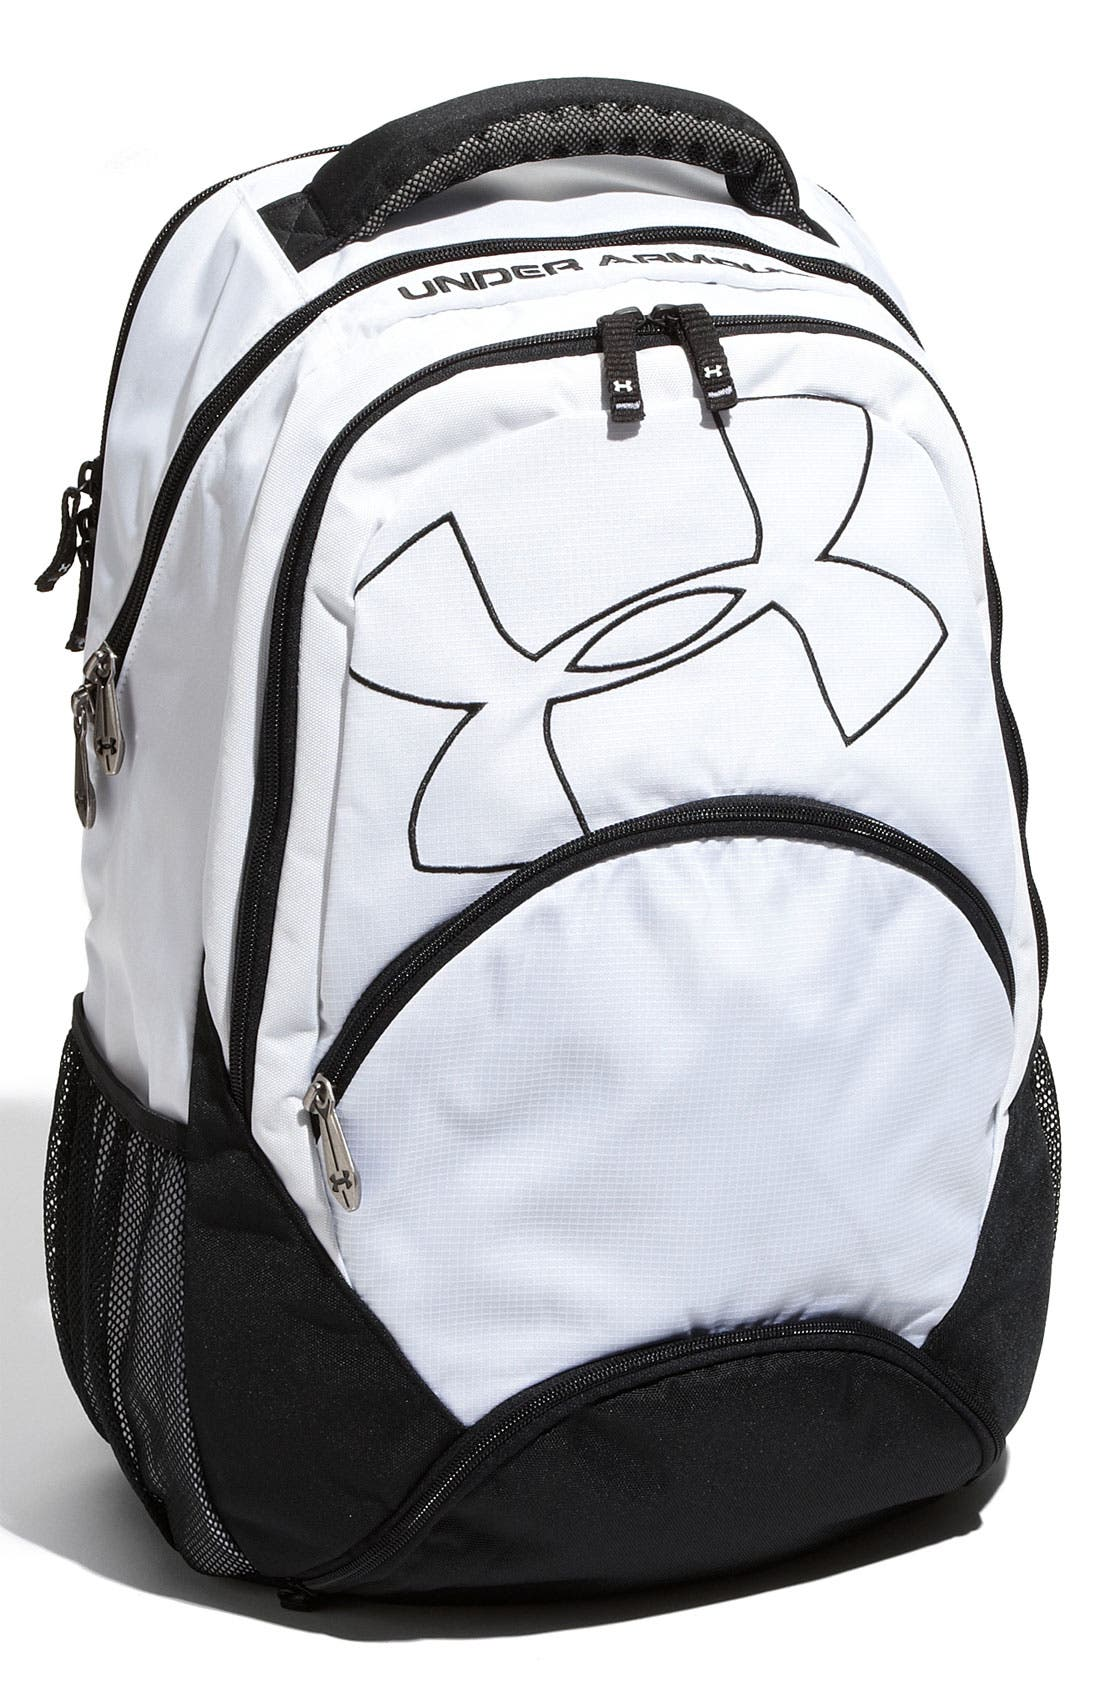 Alternate Image 1 Selected - Under Armour 'Protego' Backpack